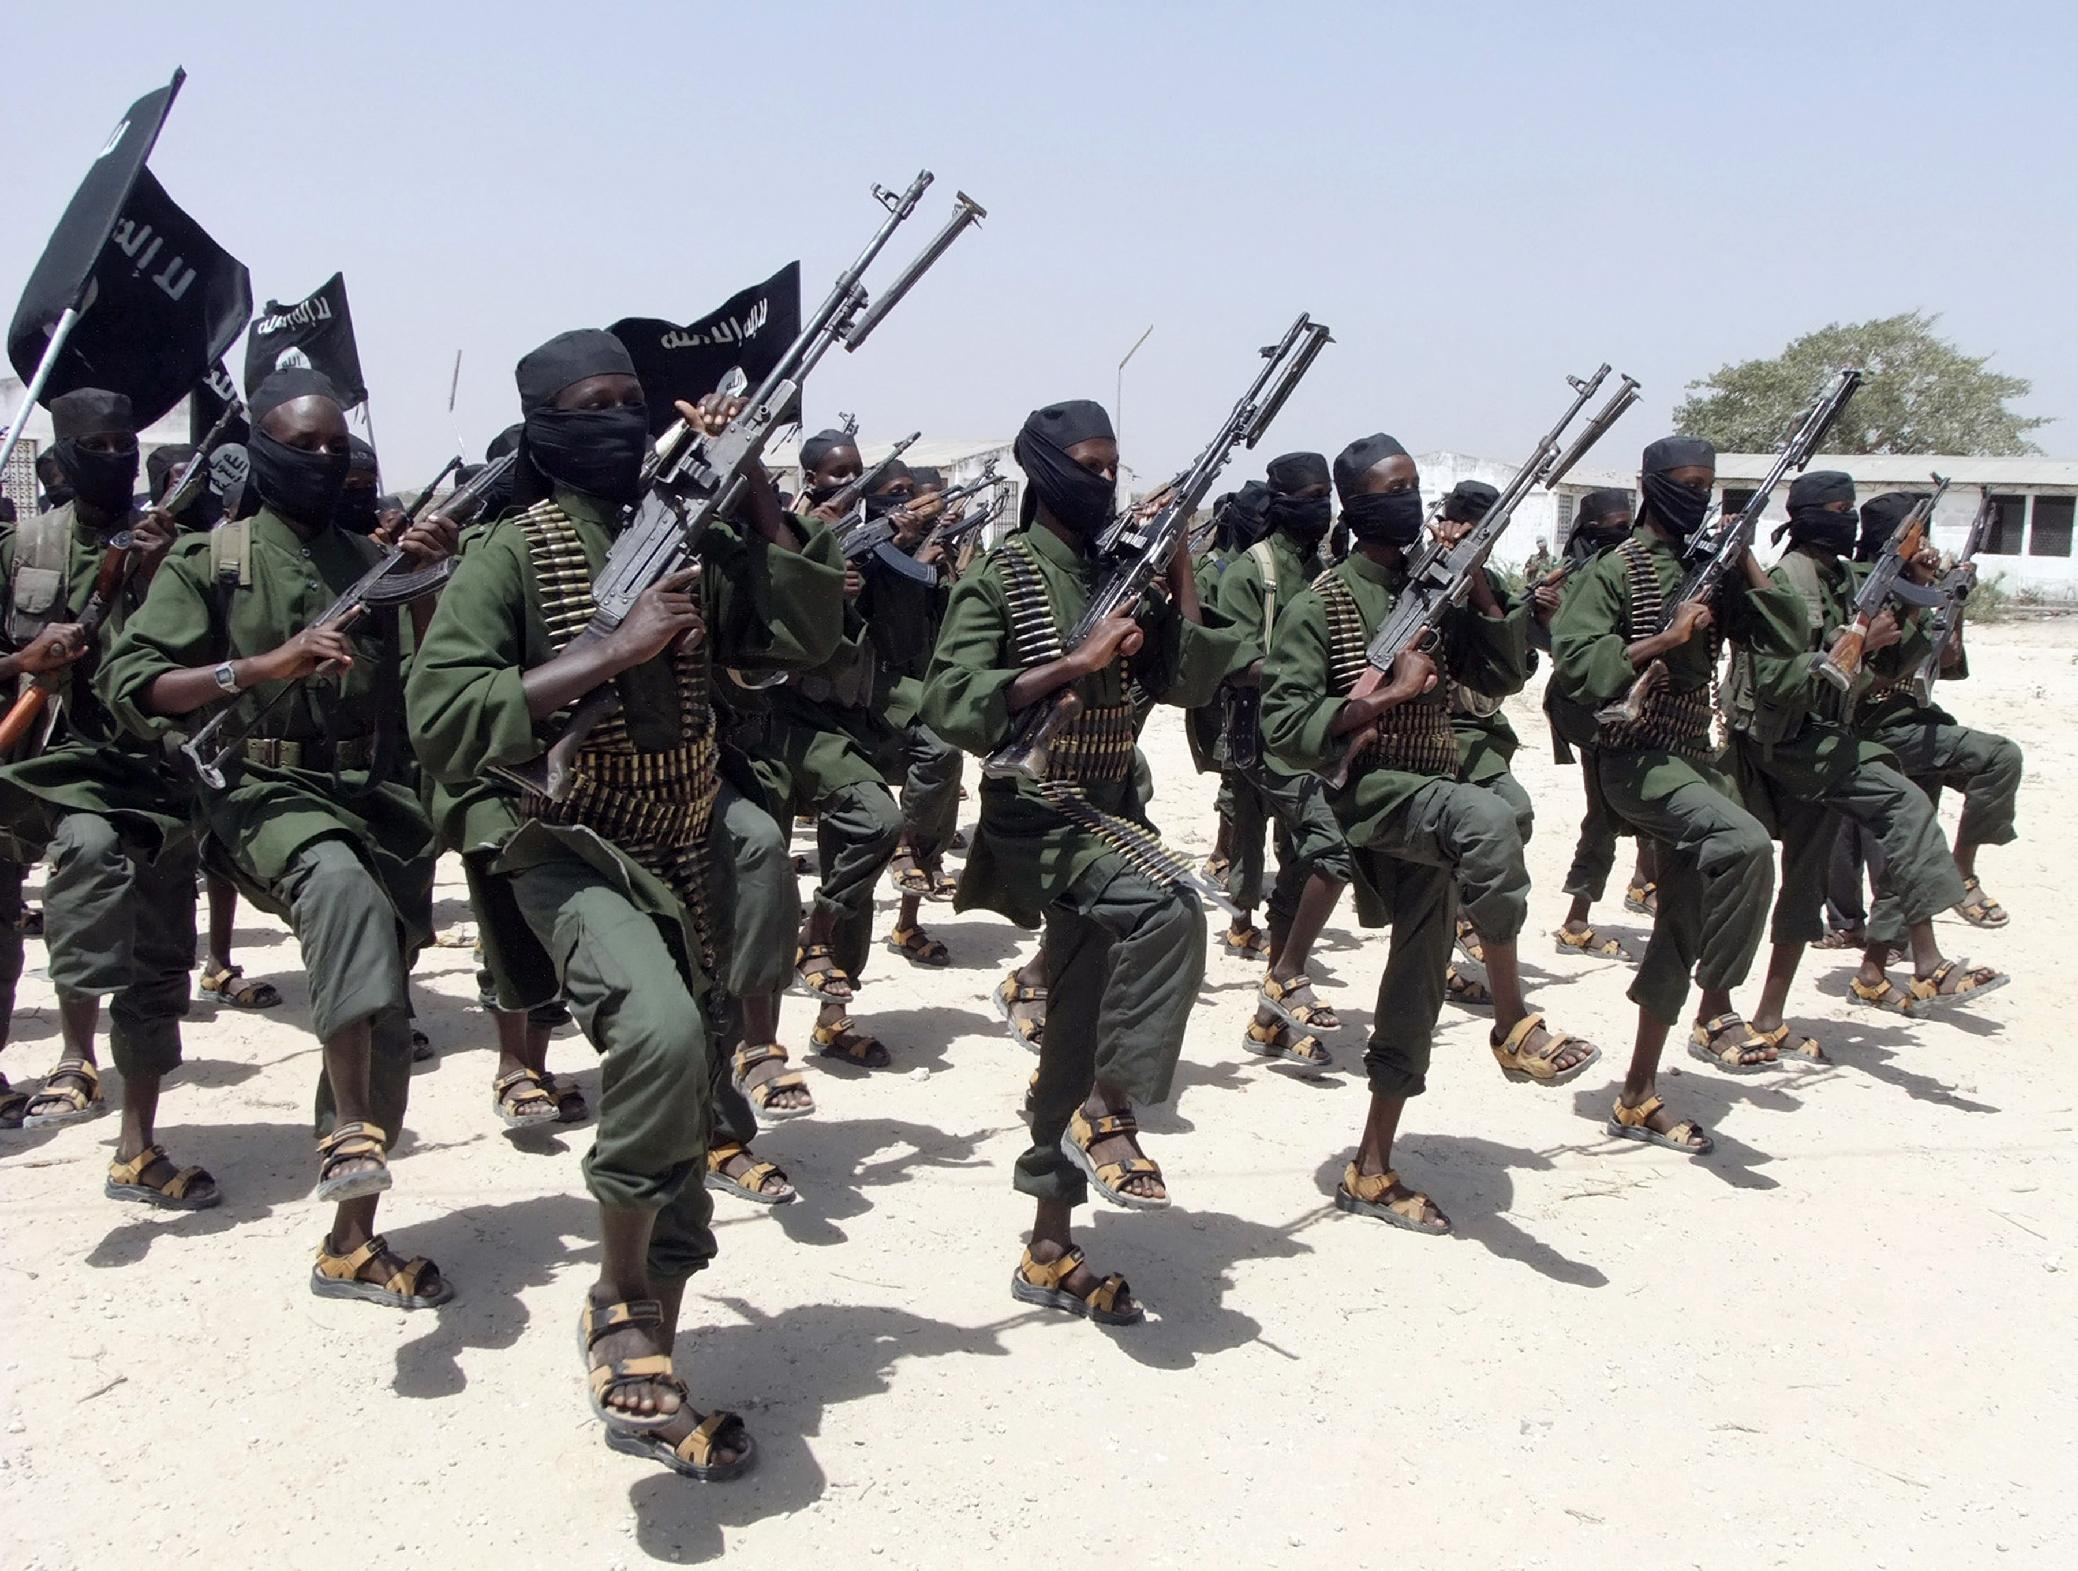 Somali militants overrun base of African Union forces